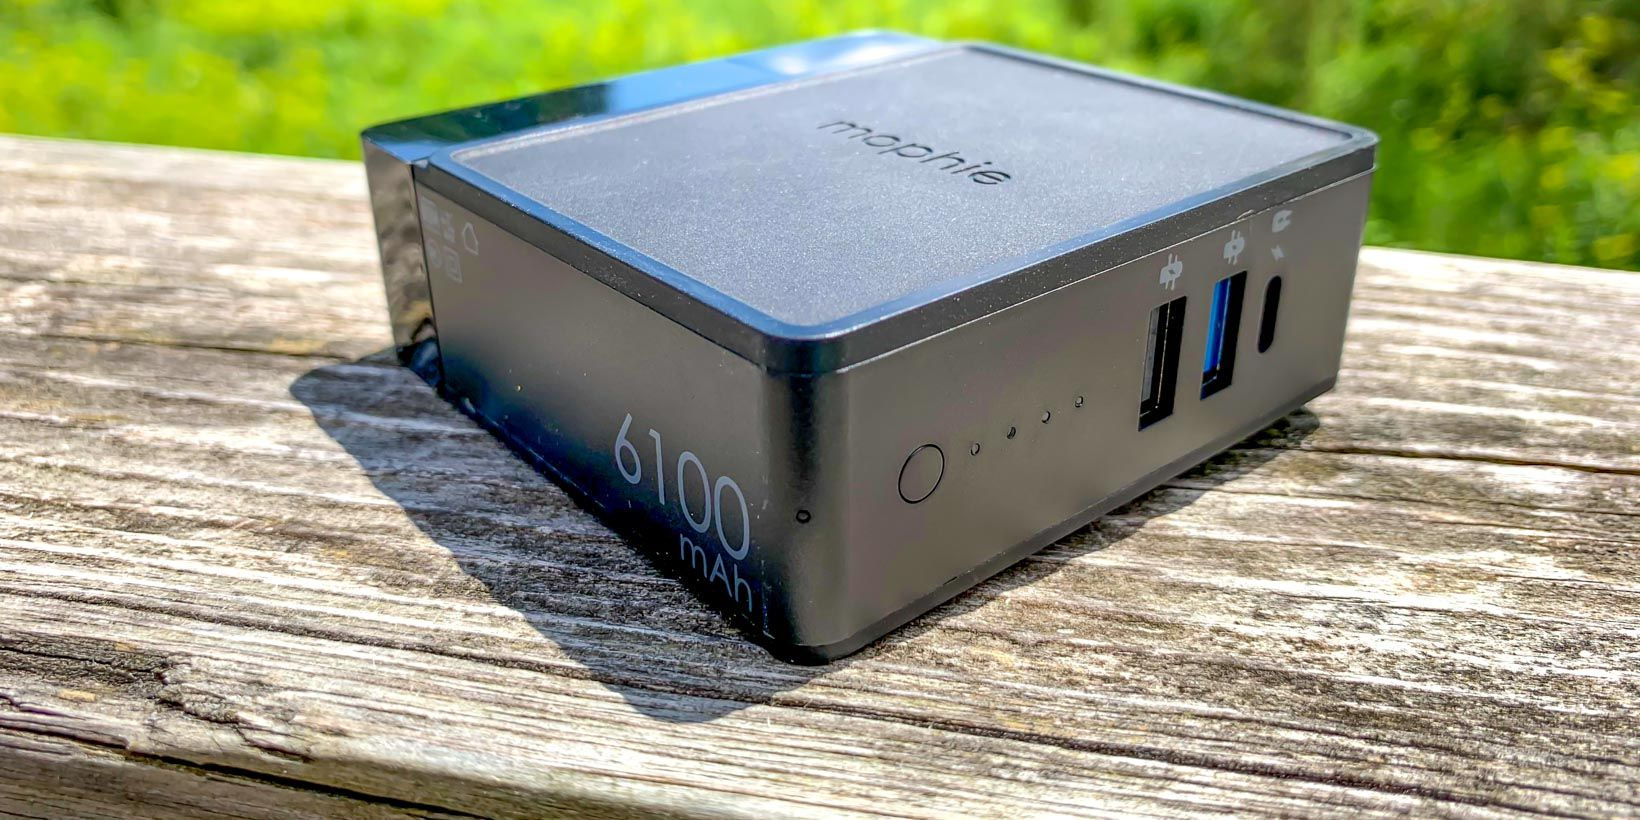 Charge all the things with the mophie powerstation hub